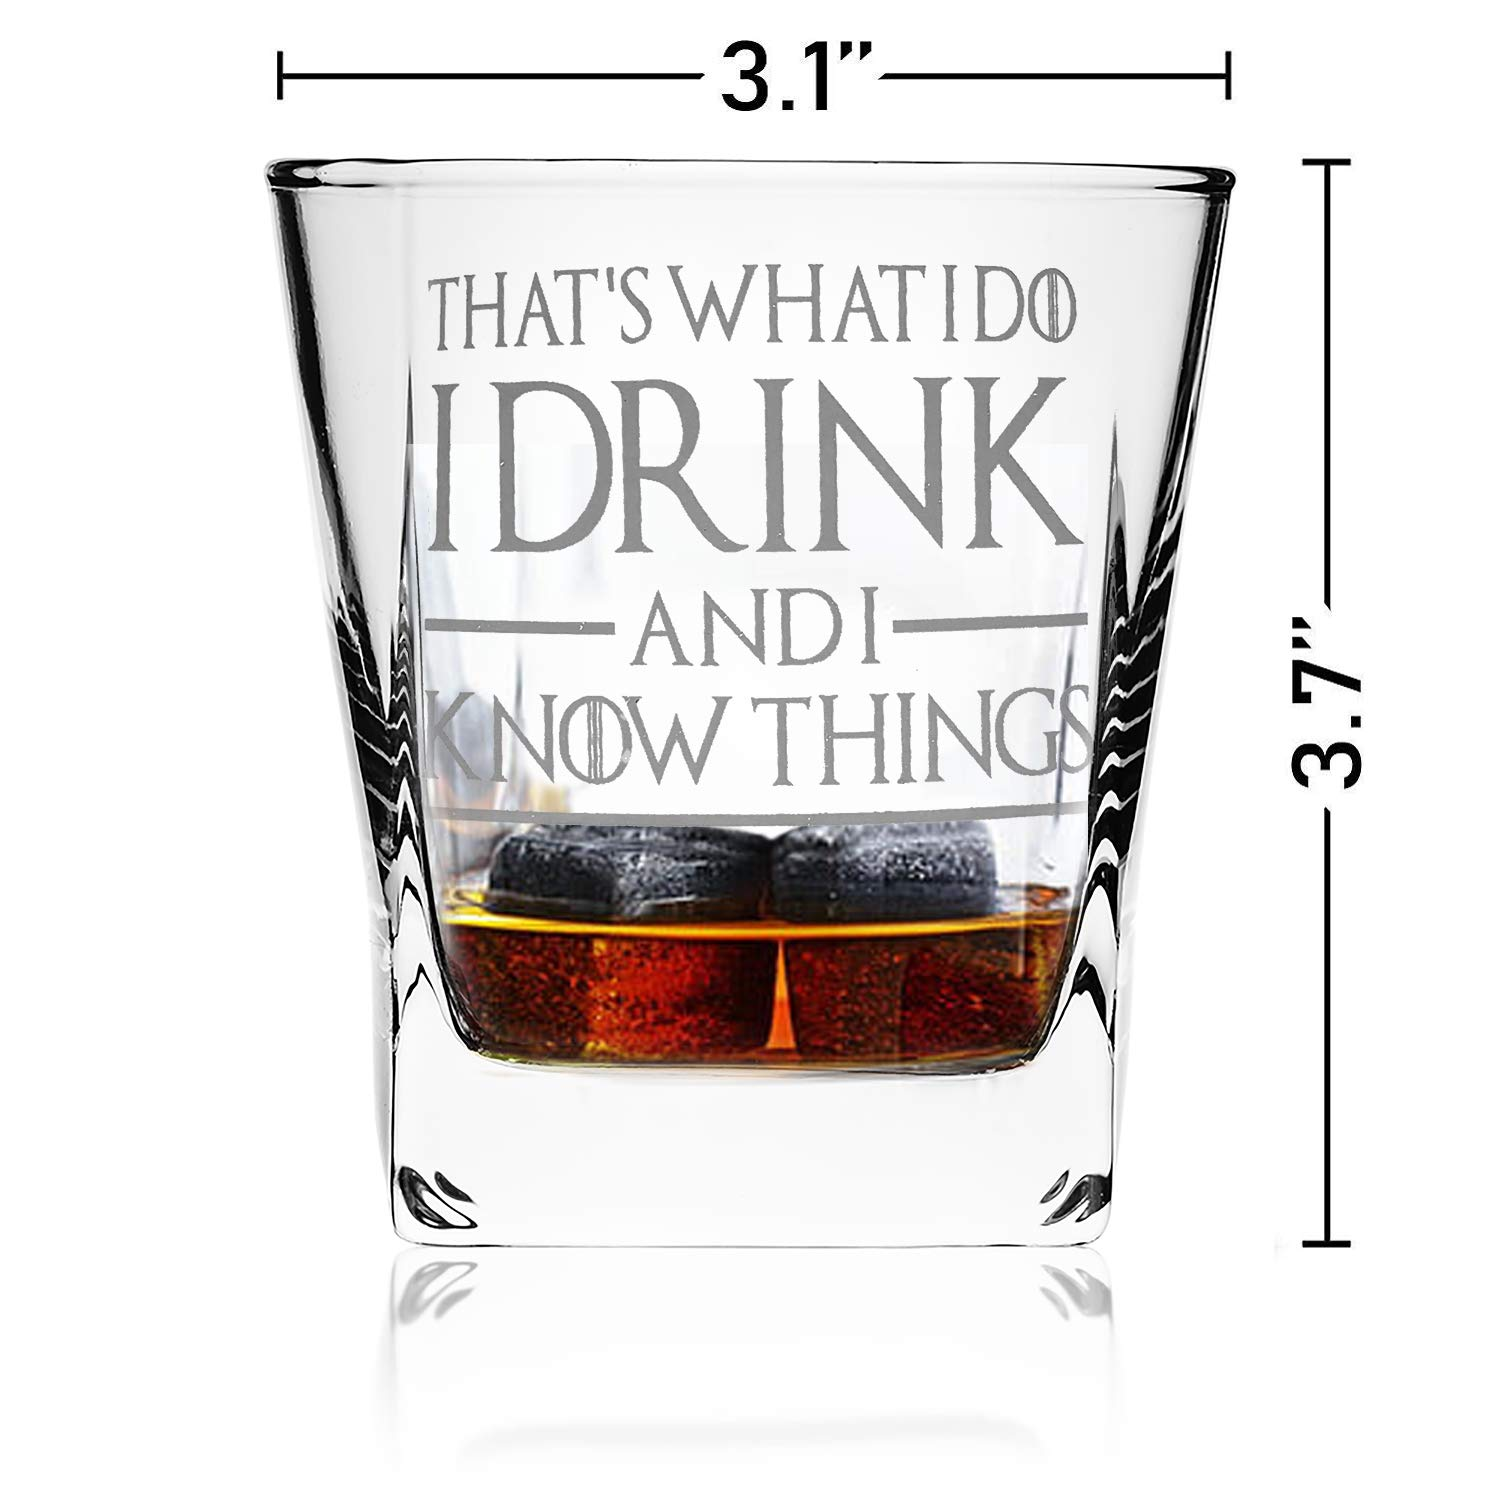 Thats What I Do I Drink and I Know Things, Premium Game of Thrones Whiskey Glass, 10.6OZ Whiskey Glass with 2 Whiskey Stones, Great Gift for Game Of Thrones Fans by DINCR by DINCR (Image #2)